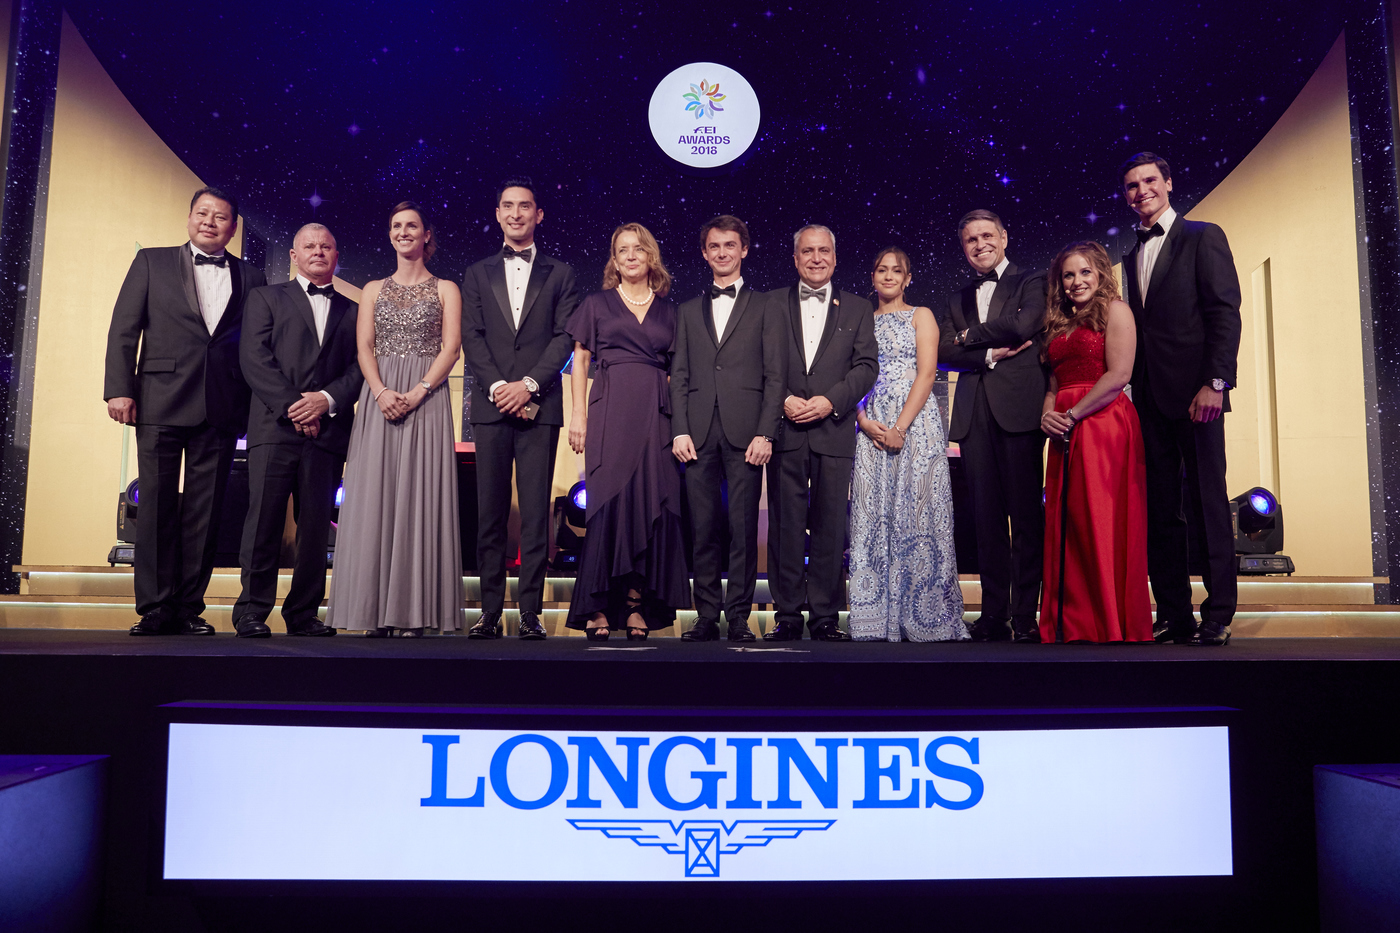 Longines Show Jumping Event: Longines celebrates its long-lasting connection with the equestrian world at the 2018 FEI Awards 3